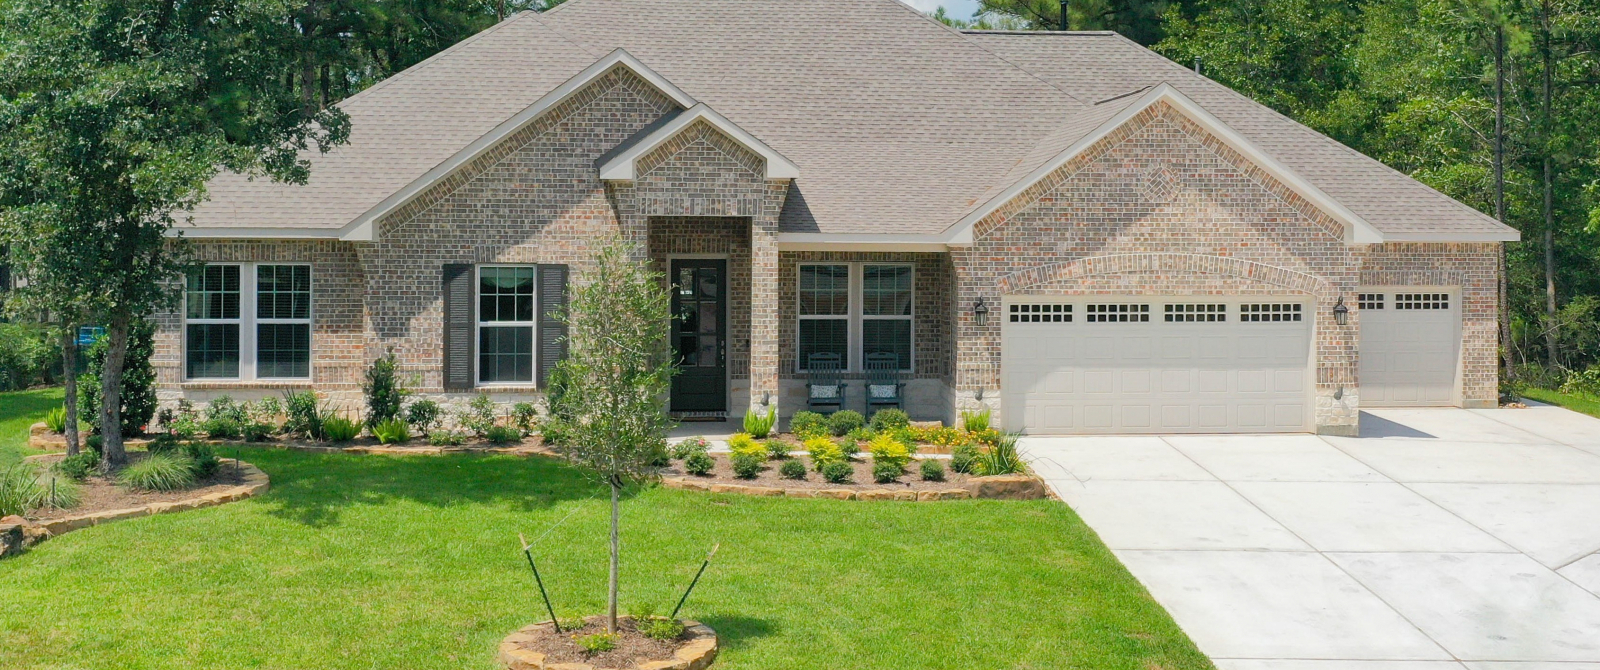 Build On Your Land Gracepoint Homes New Home Builder